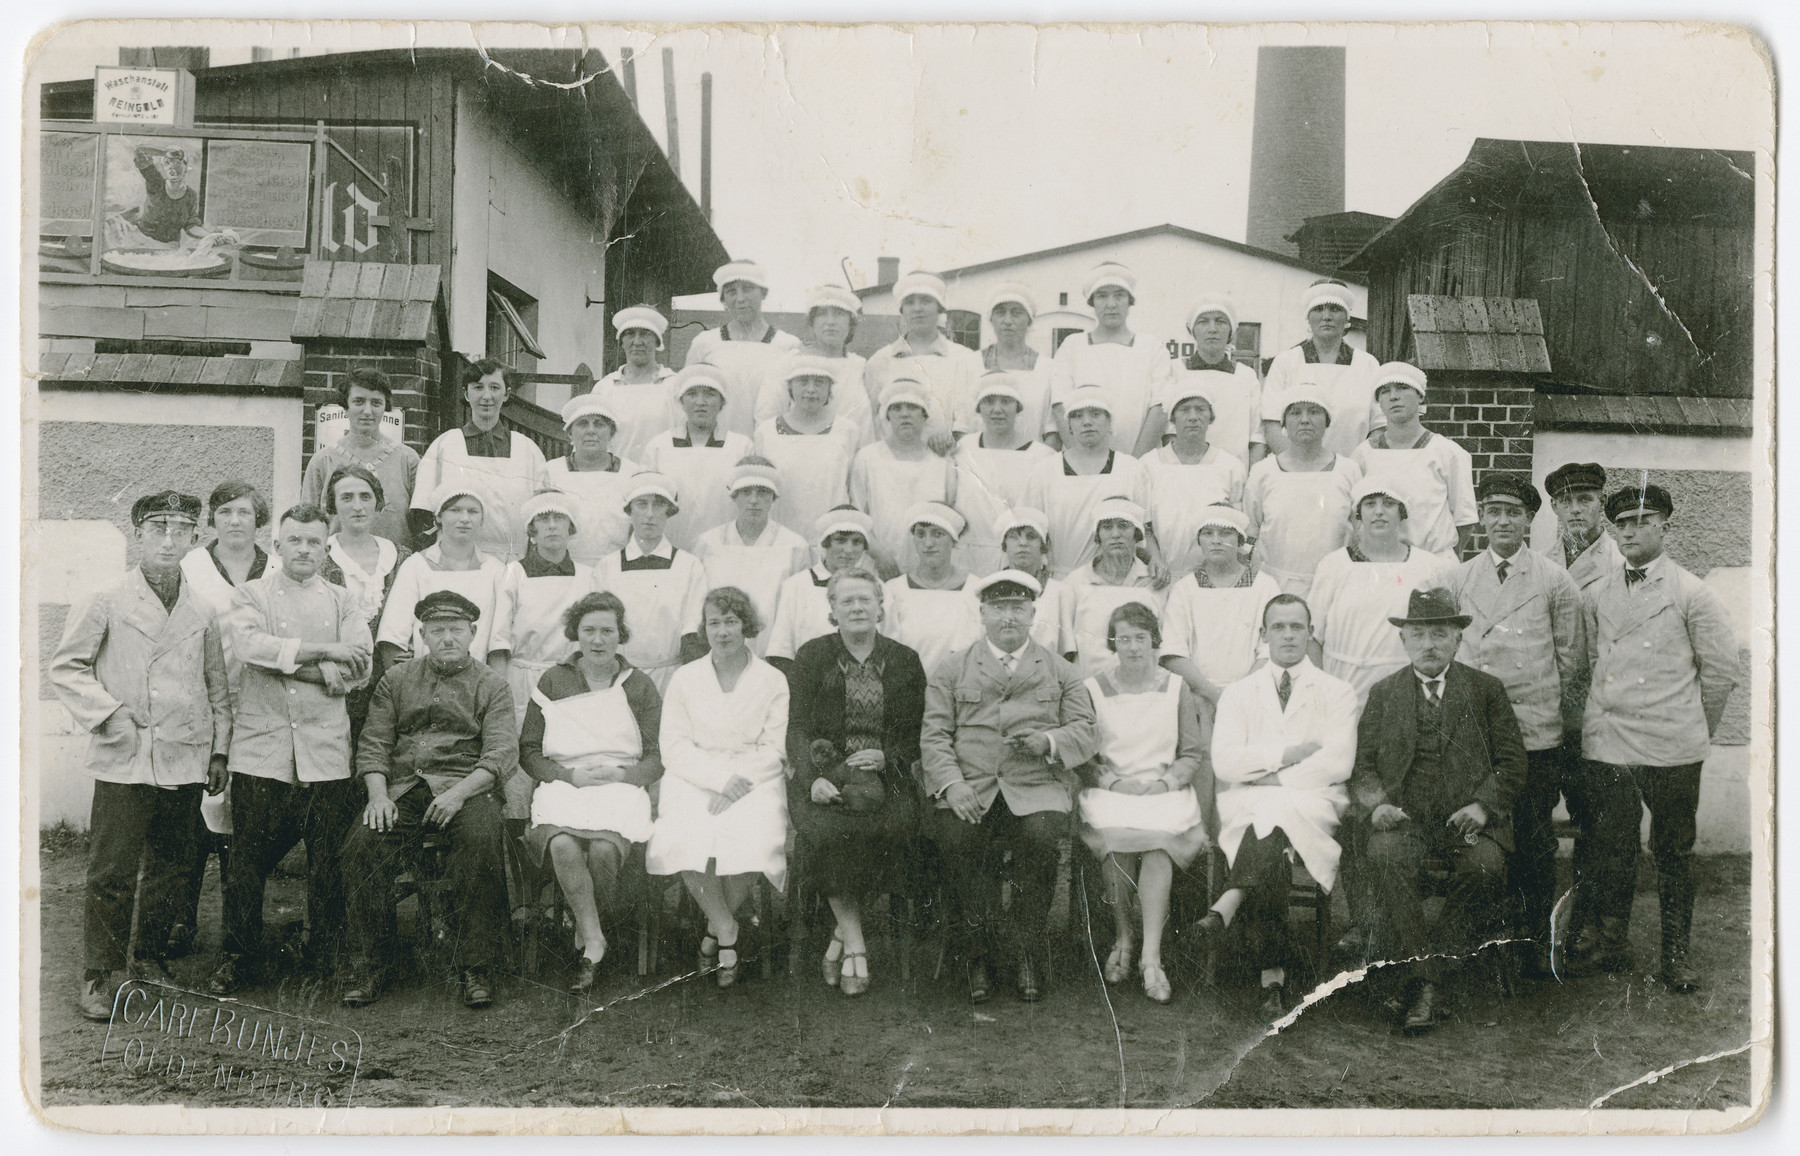 Group portrait of the staff of the Reingold Laundry in Oldenburg including members of the de-Beer family.